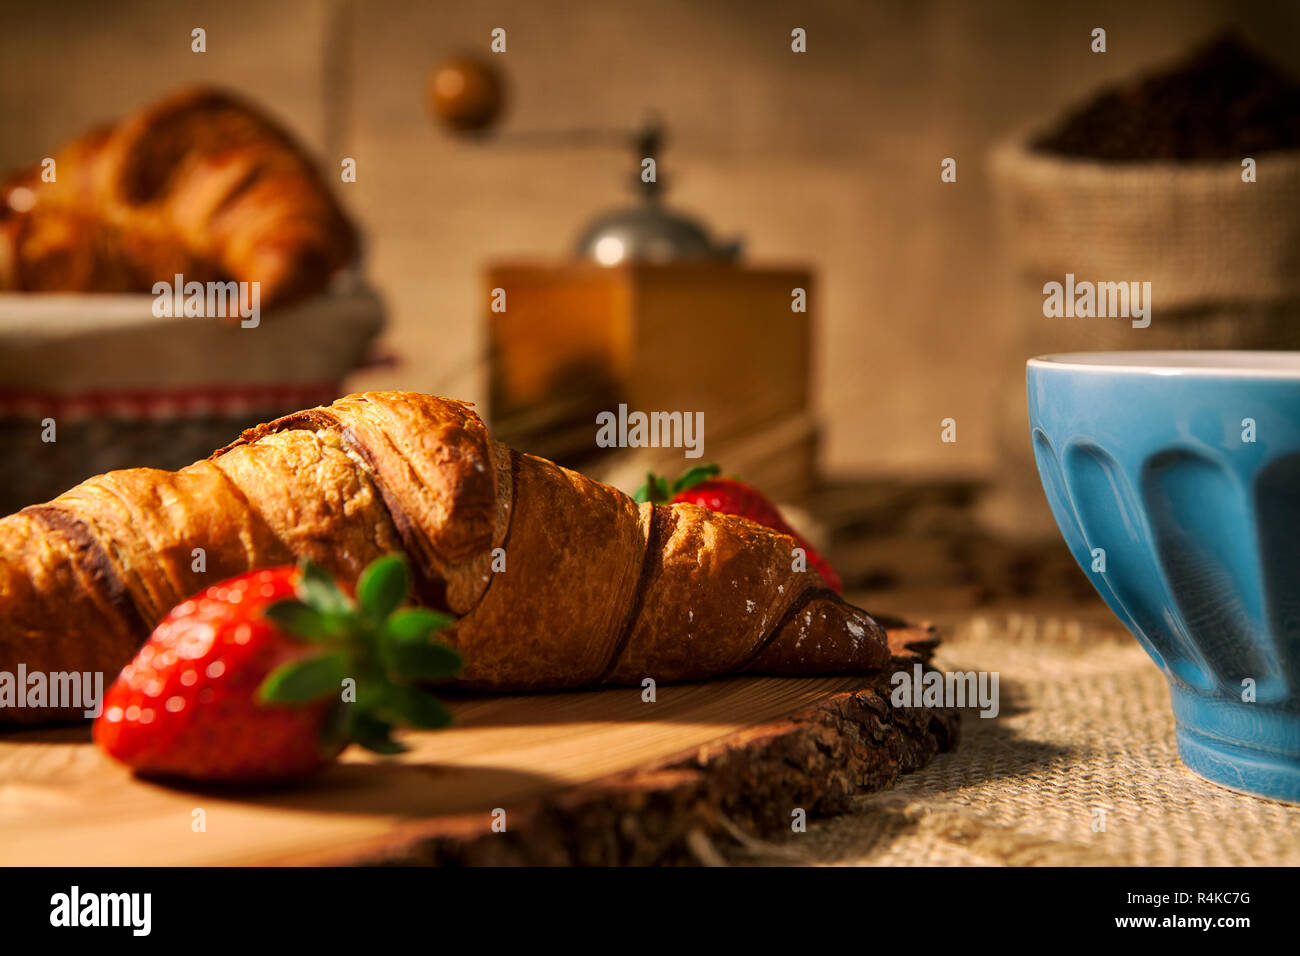 Closeup of a continental breakfast with croissant and a cup of milk - Stock Image